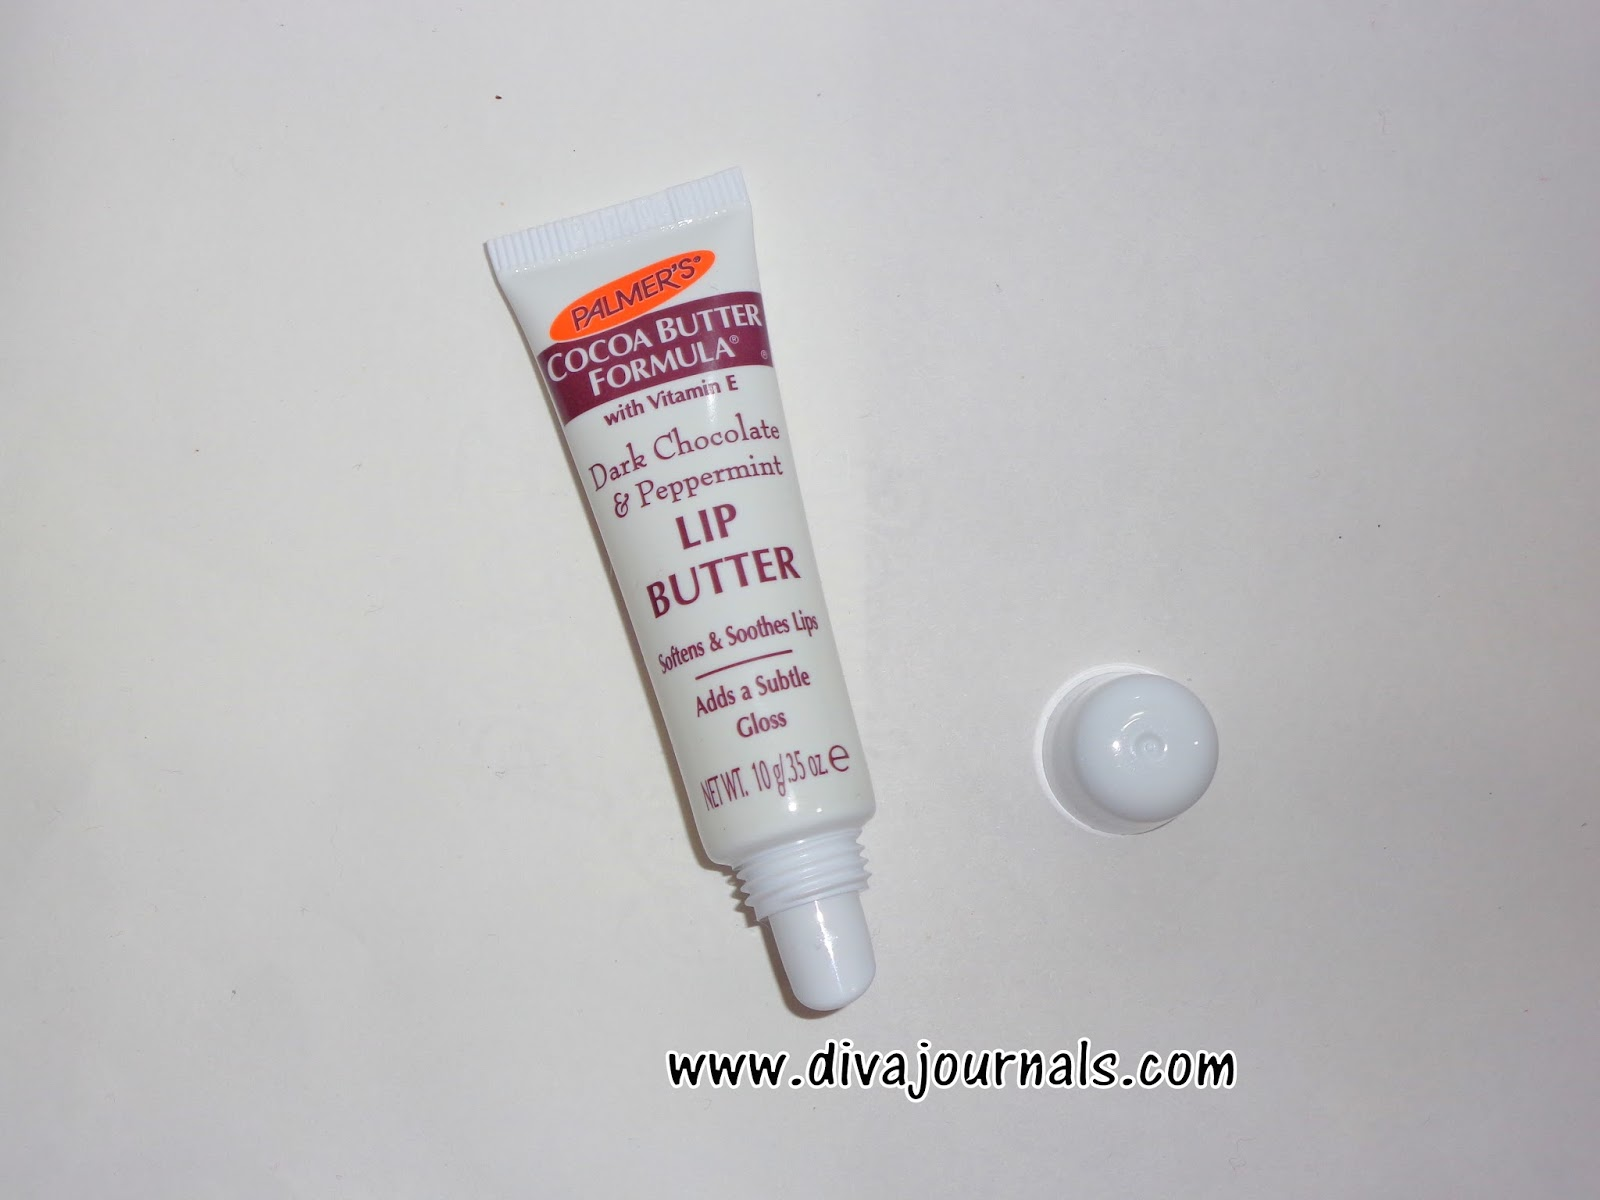 Palmer's Cocoa Butter Formula Dark Chocolate & Peppermint Lip Butter Review